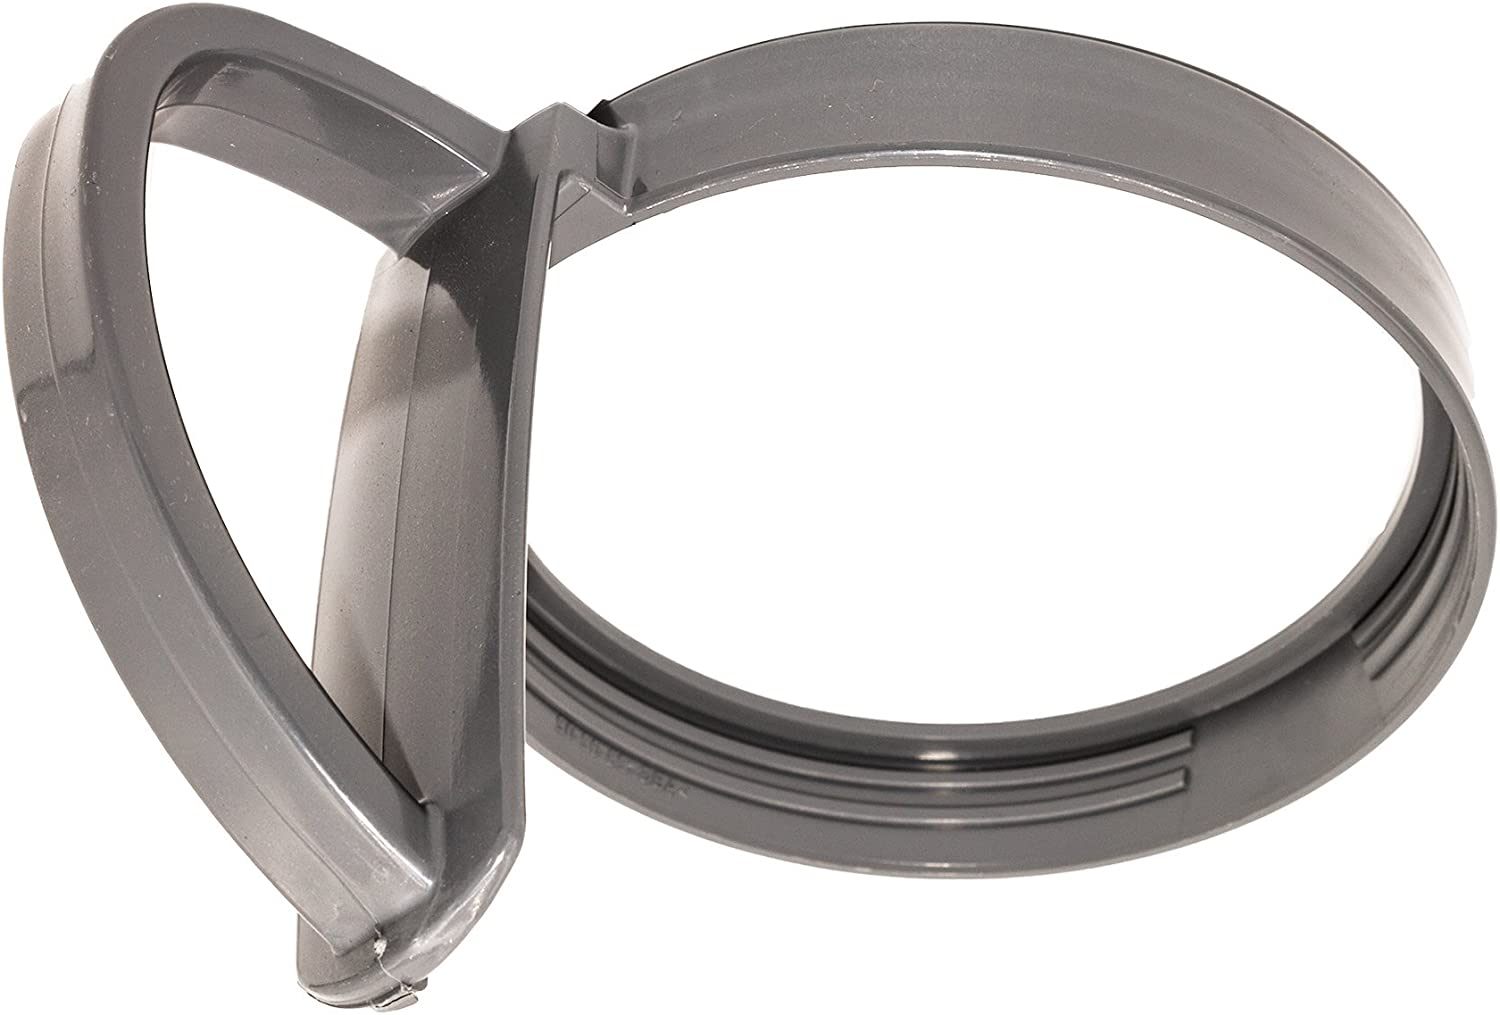 Blendin Replacement Parts, Compatible with Nutribullet 600W and 900W Blender Juicer (Handle)